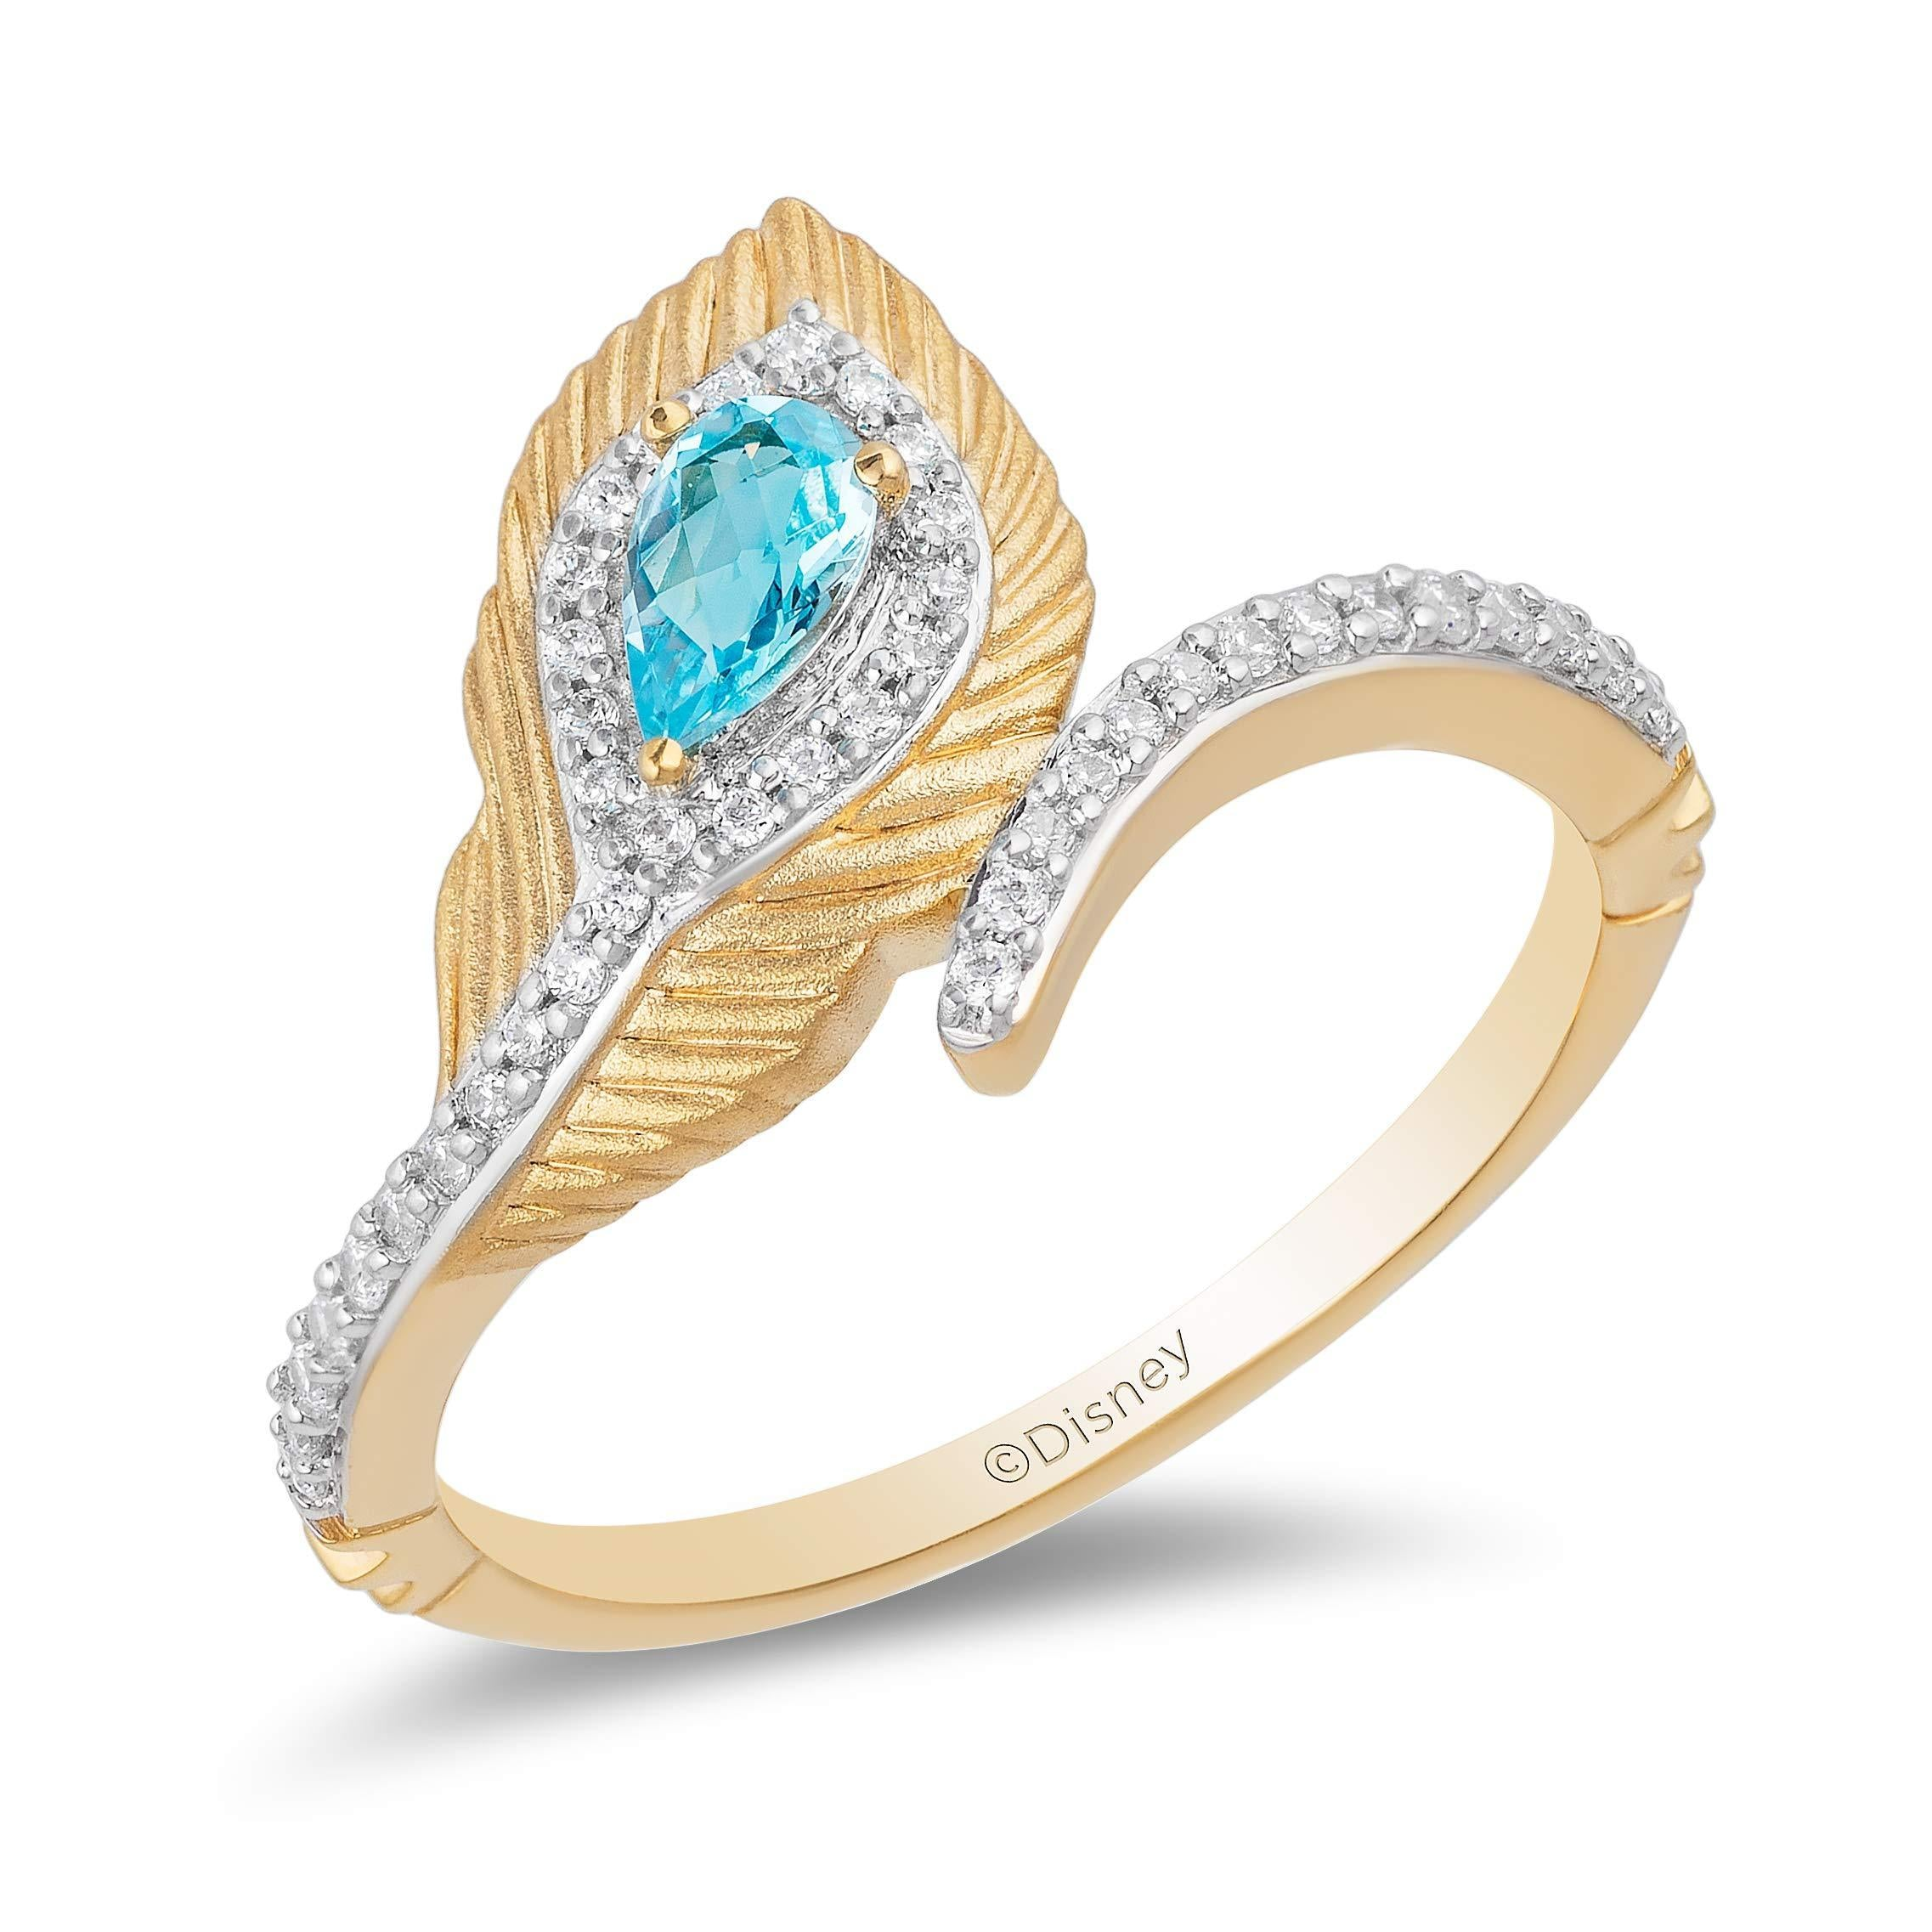 enchanted_disney-jasmine_peacock_feather_ring-9k_yellow_gold_0.16CTTW_1